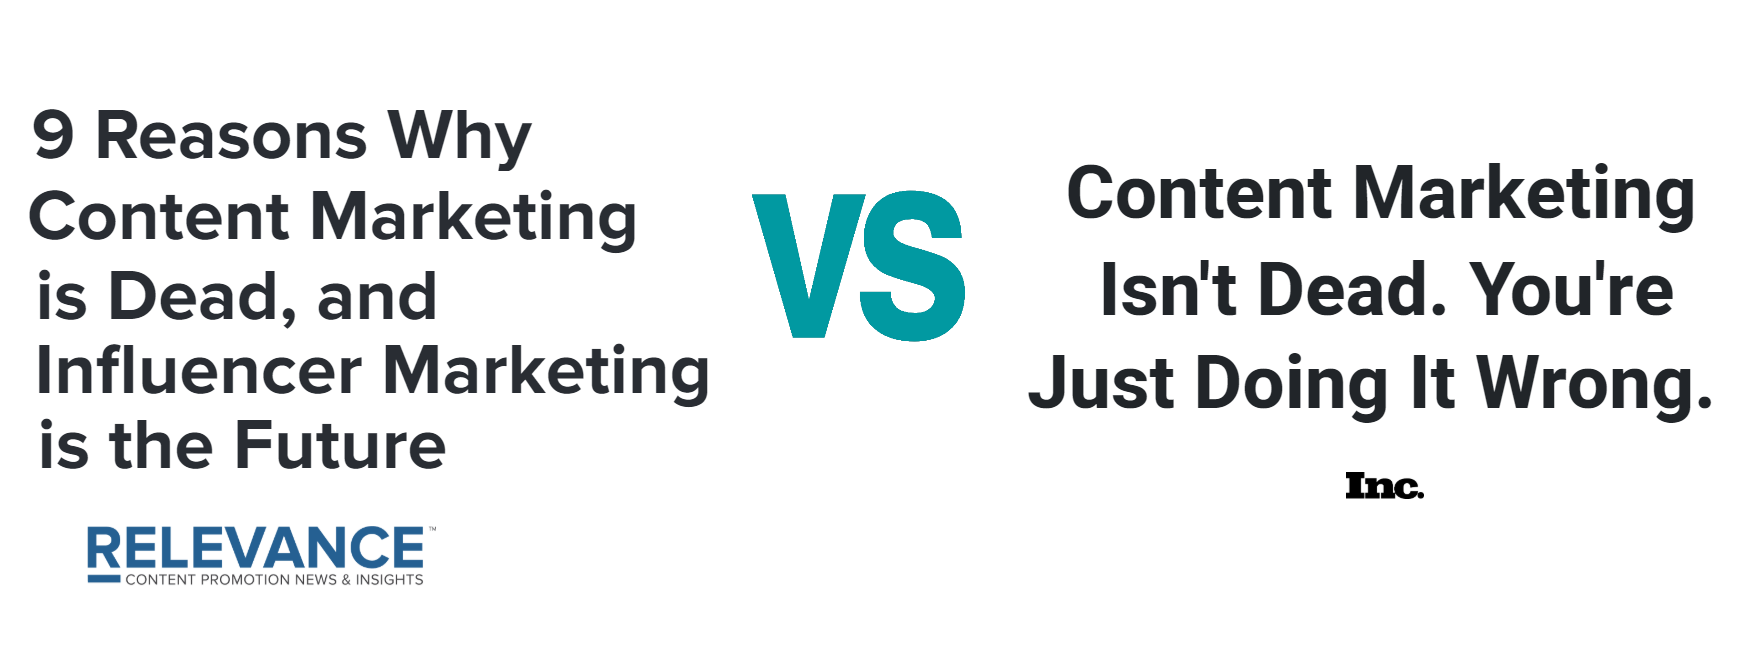 """"""" 9 Reasons Why Content Marketing is Dead """" (Relevance) vs. """" Content Marketing Isn't Dead. You're Just Doing It Wrong ."""" (Inc.)"""